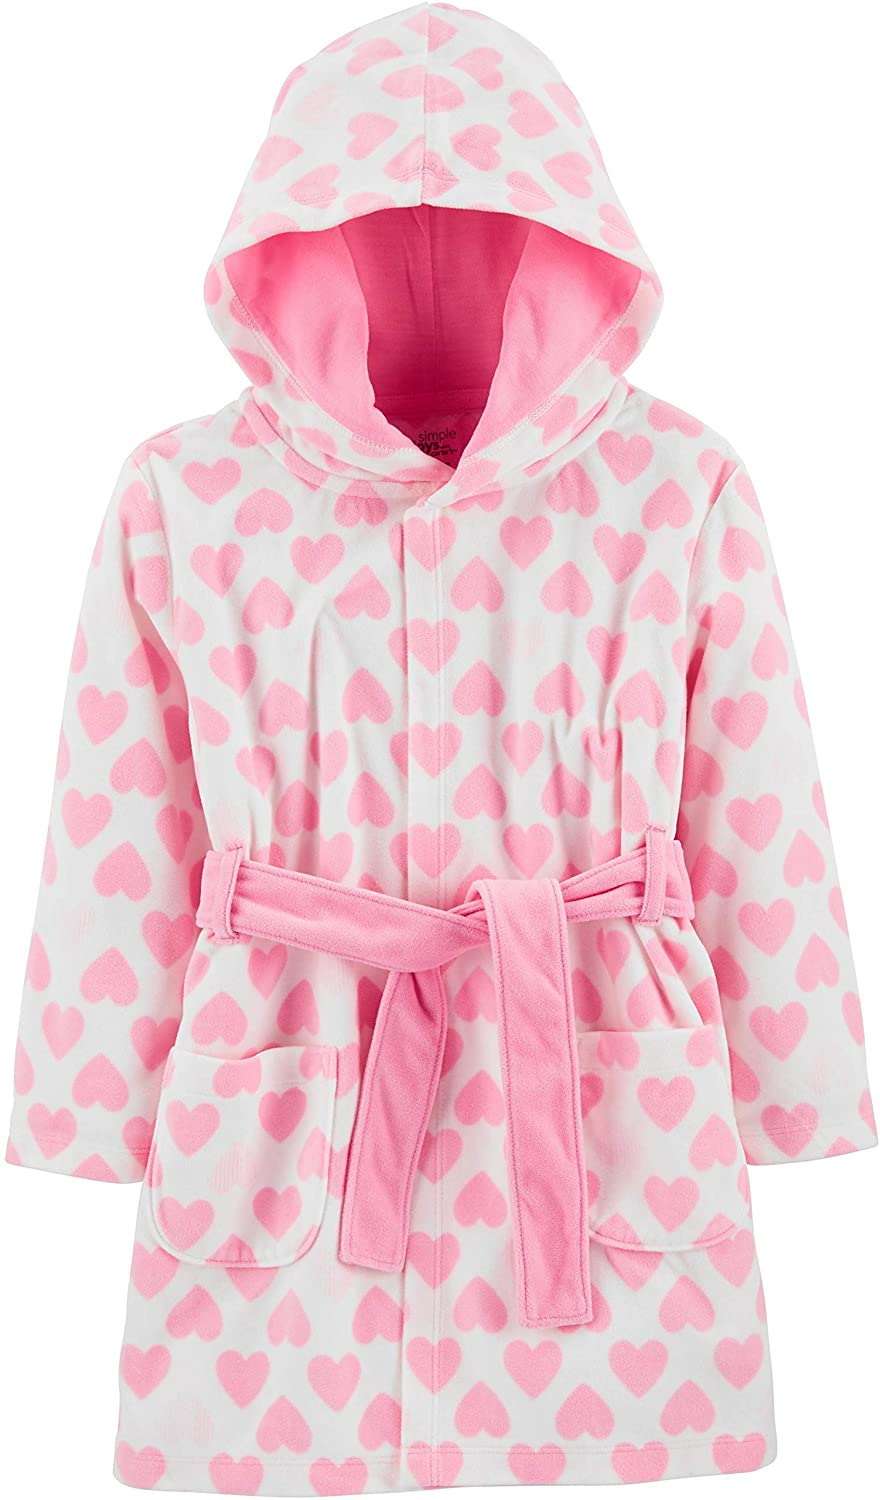 Simple Joys by Carter's Baby and Toddler Girls' Hooded Sleeper Robe: Clothing